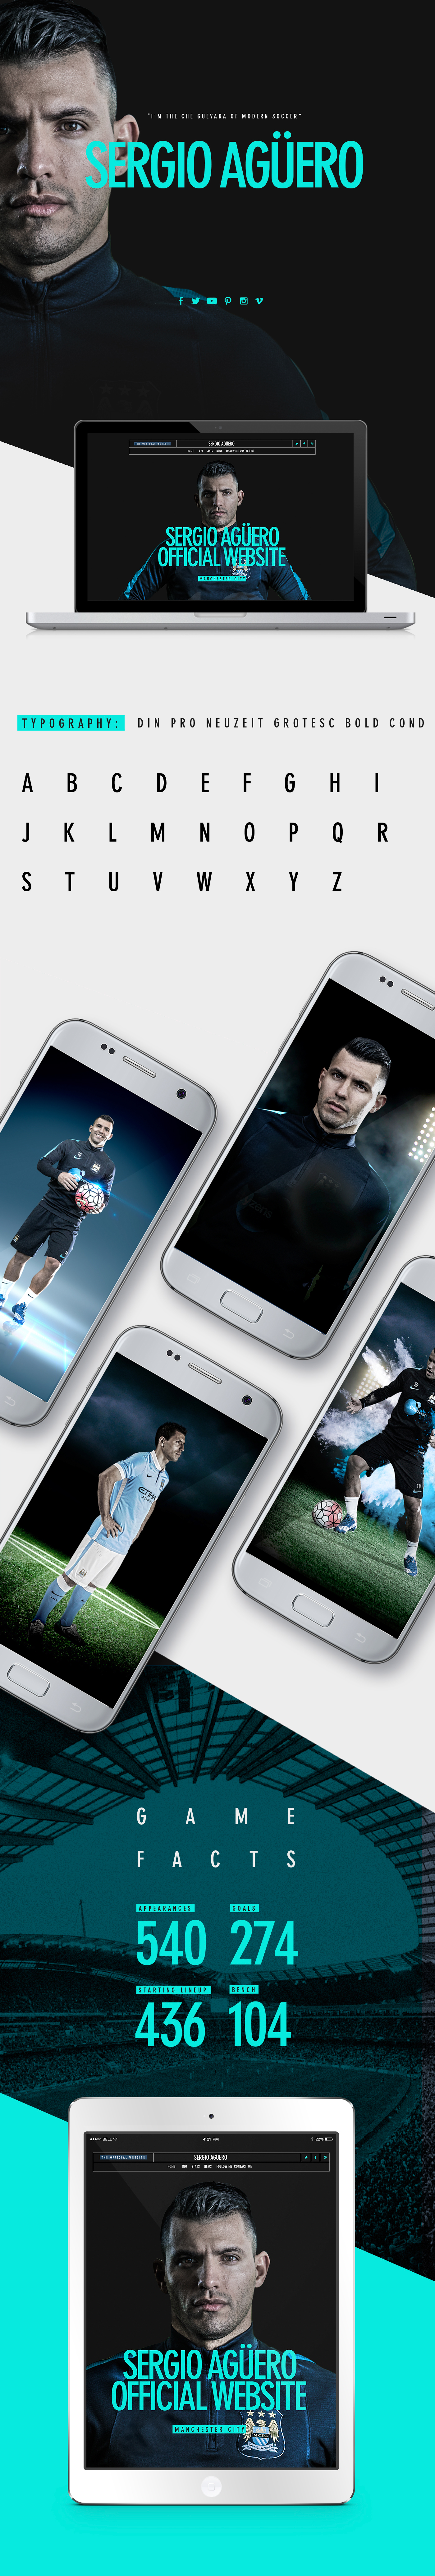 Sergio Aguero Tv Commercial Template On Behance